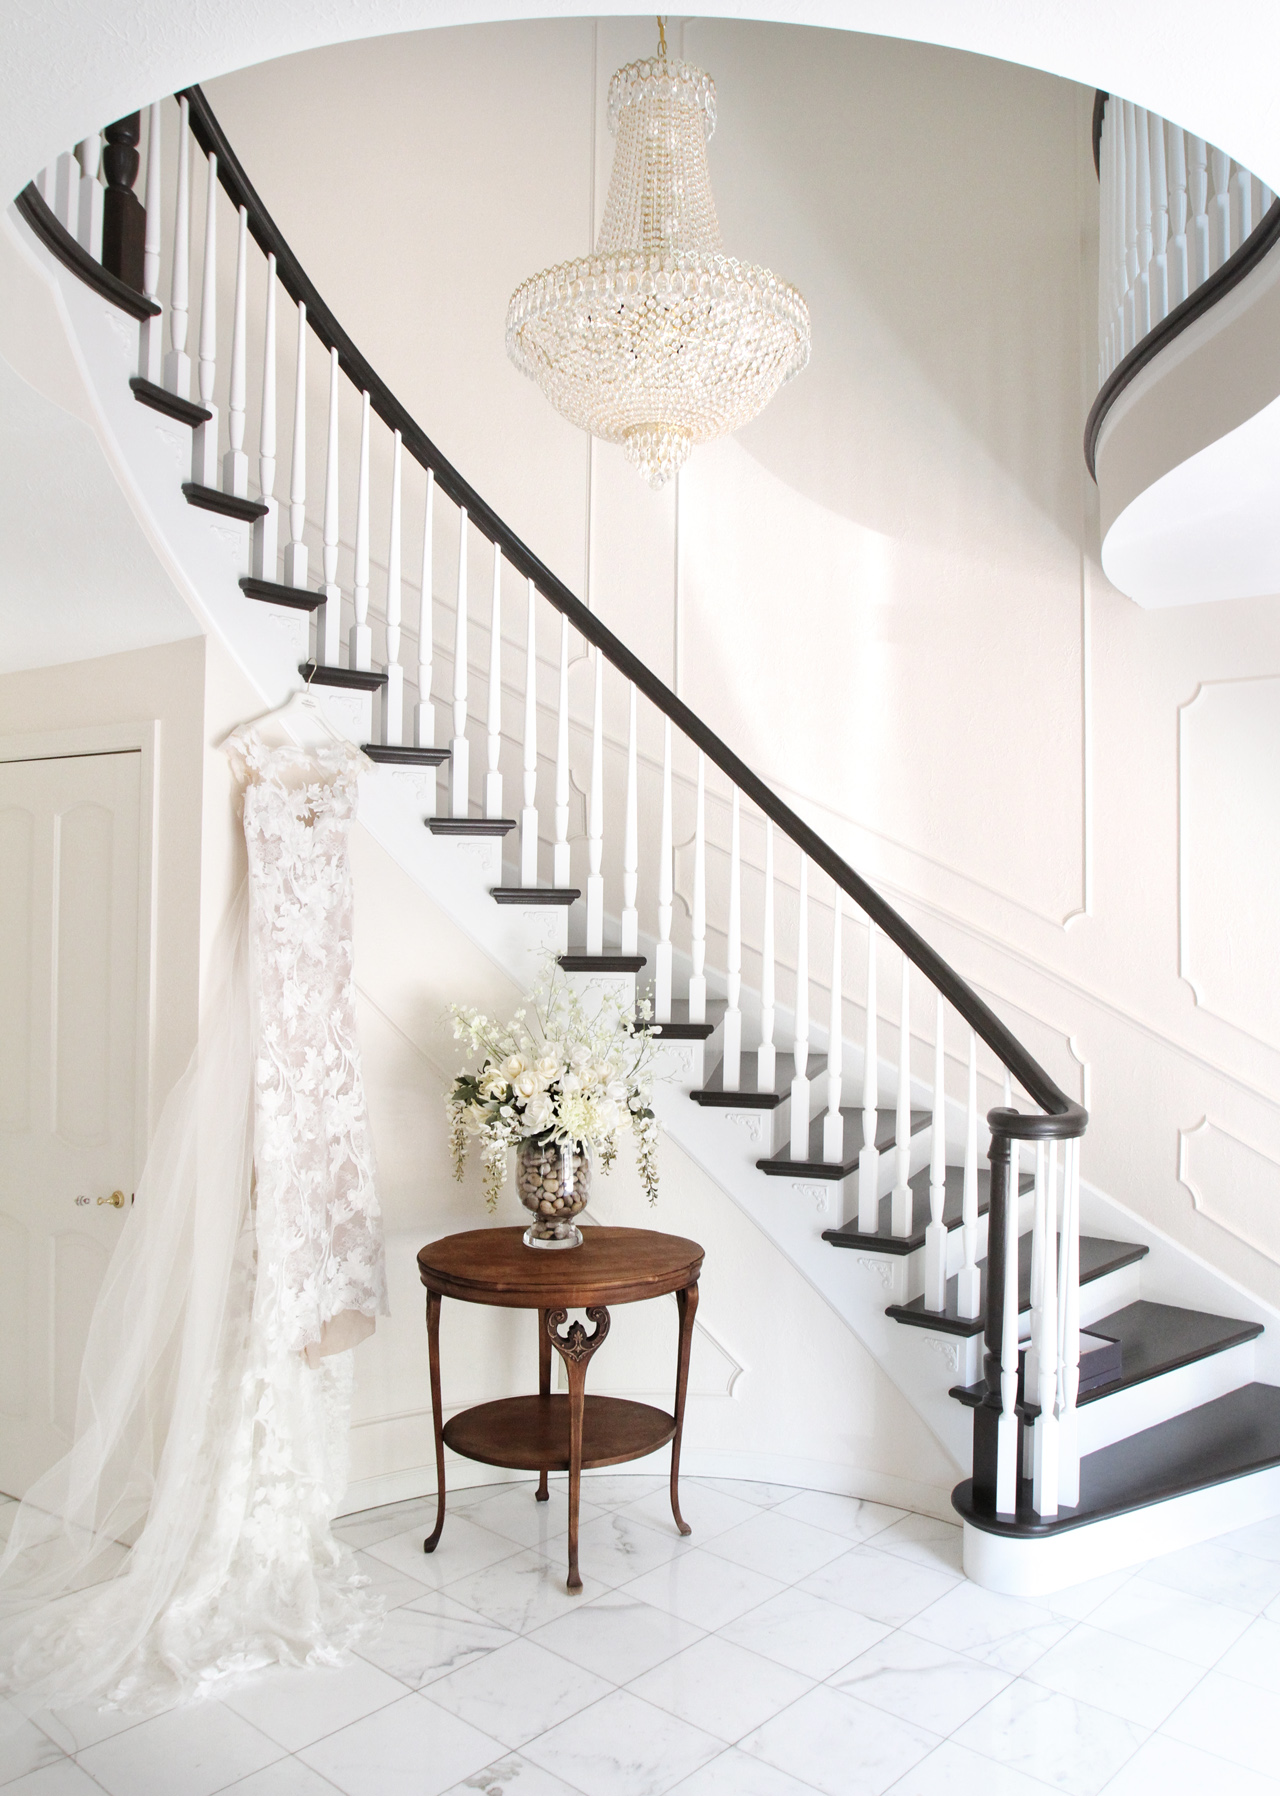 dress-at-stairs